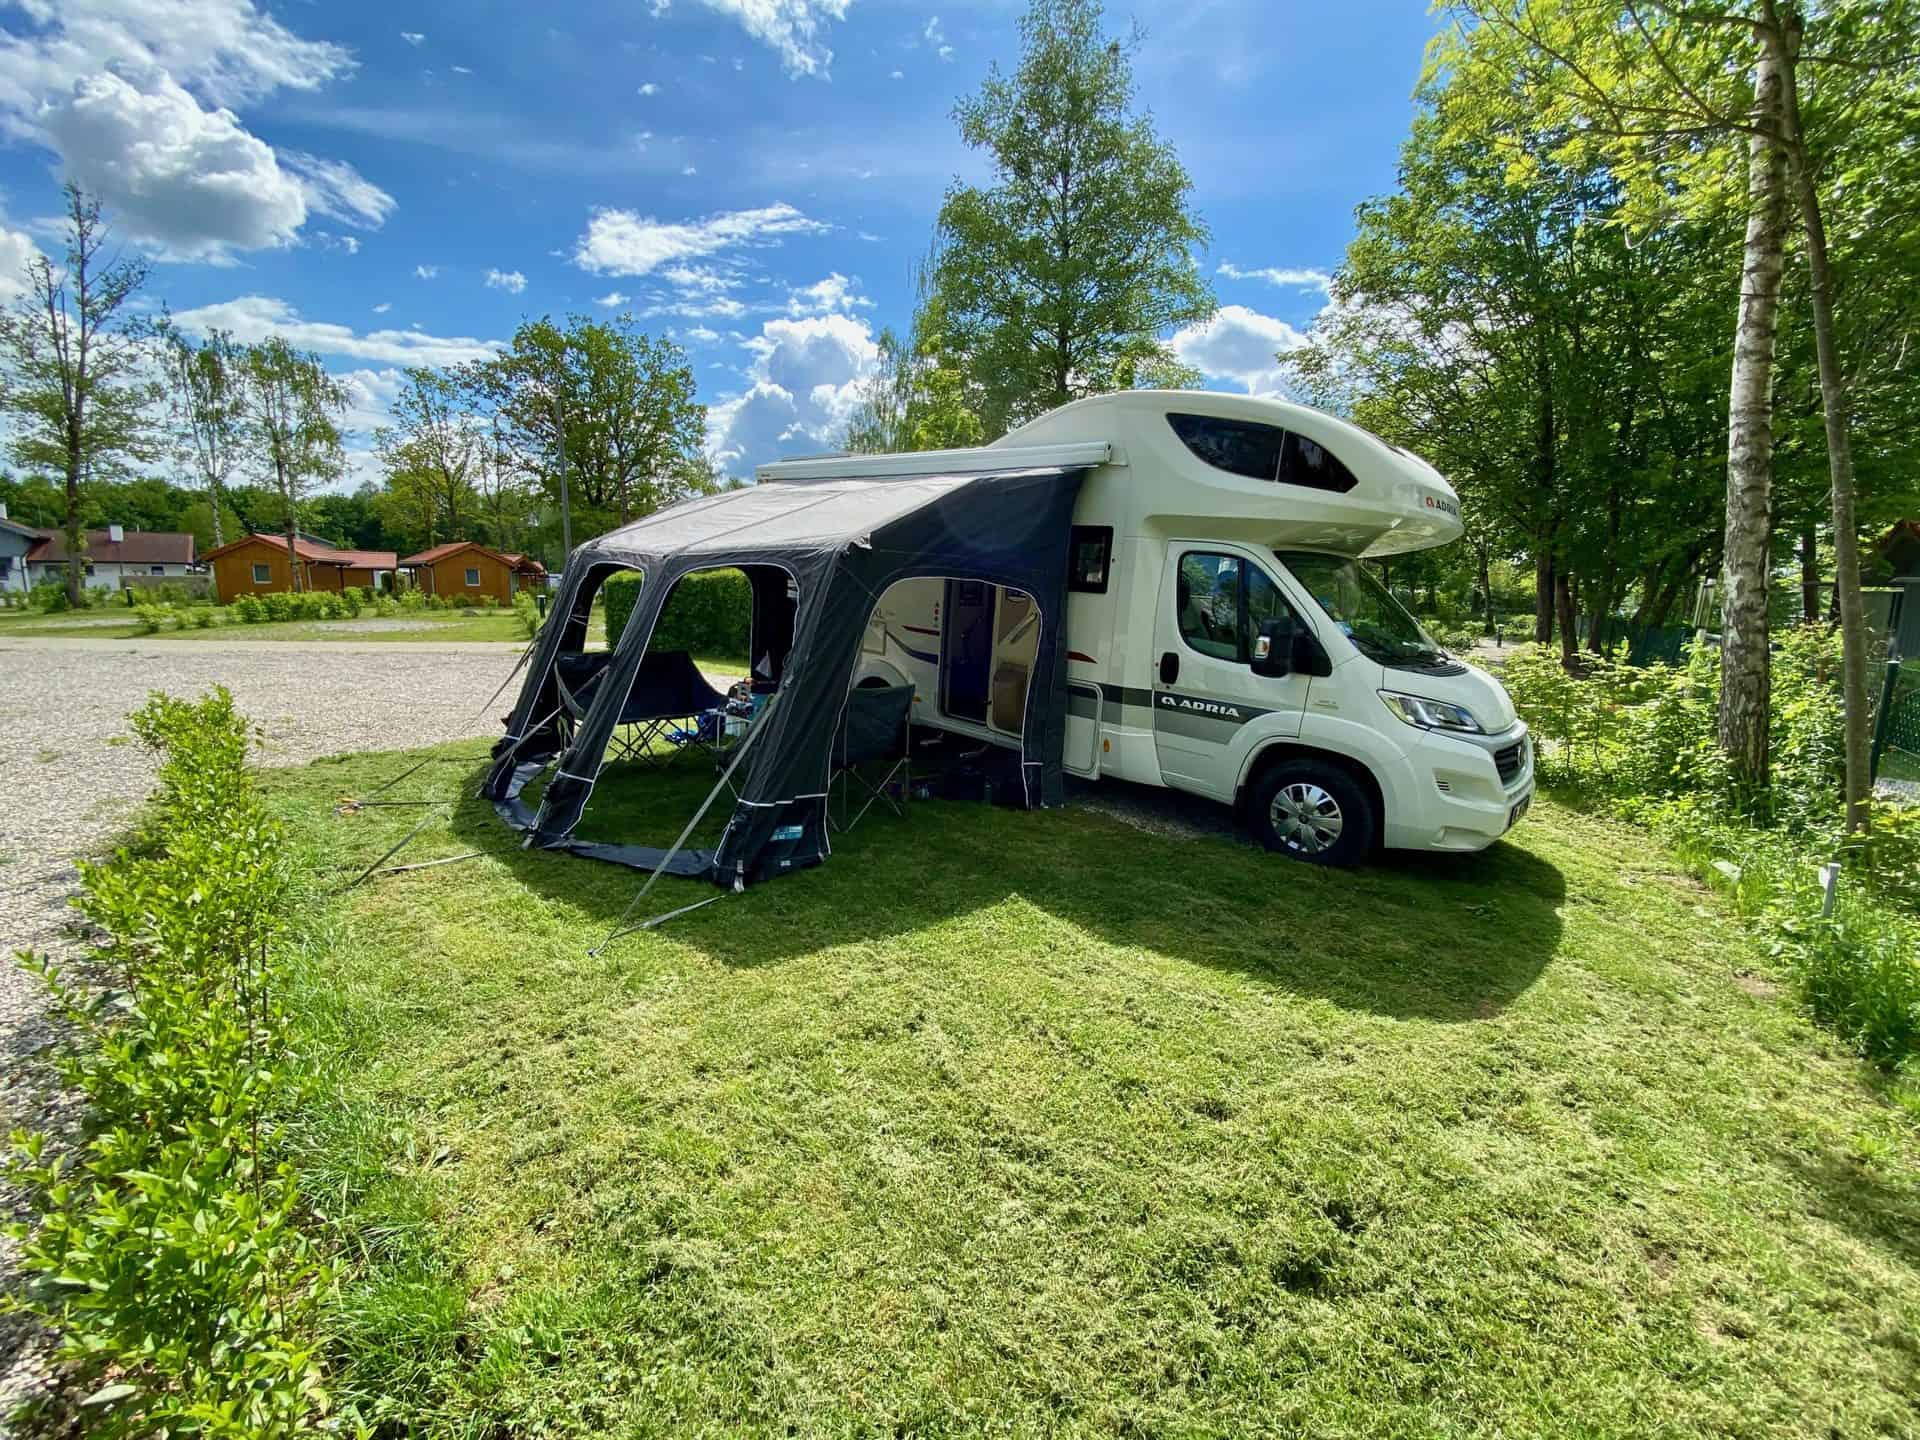 Campingplätze_München_Camping_Seeshaupt_Erste_Reihe_Camping